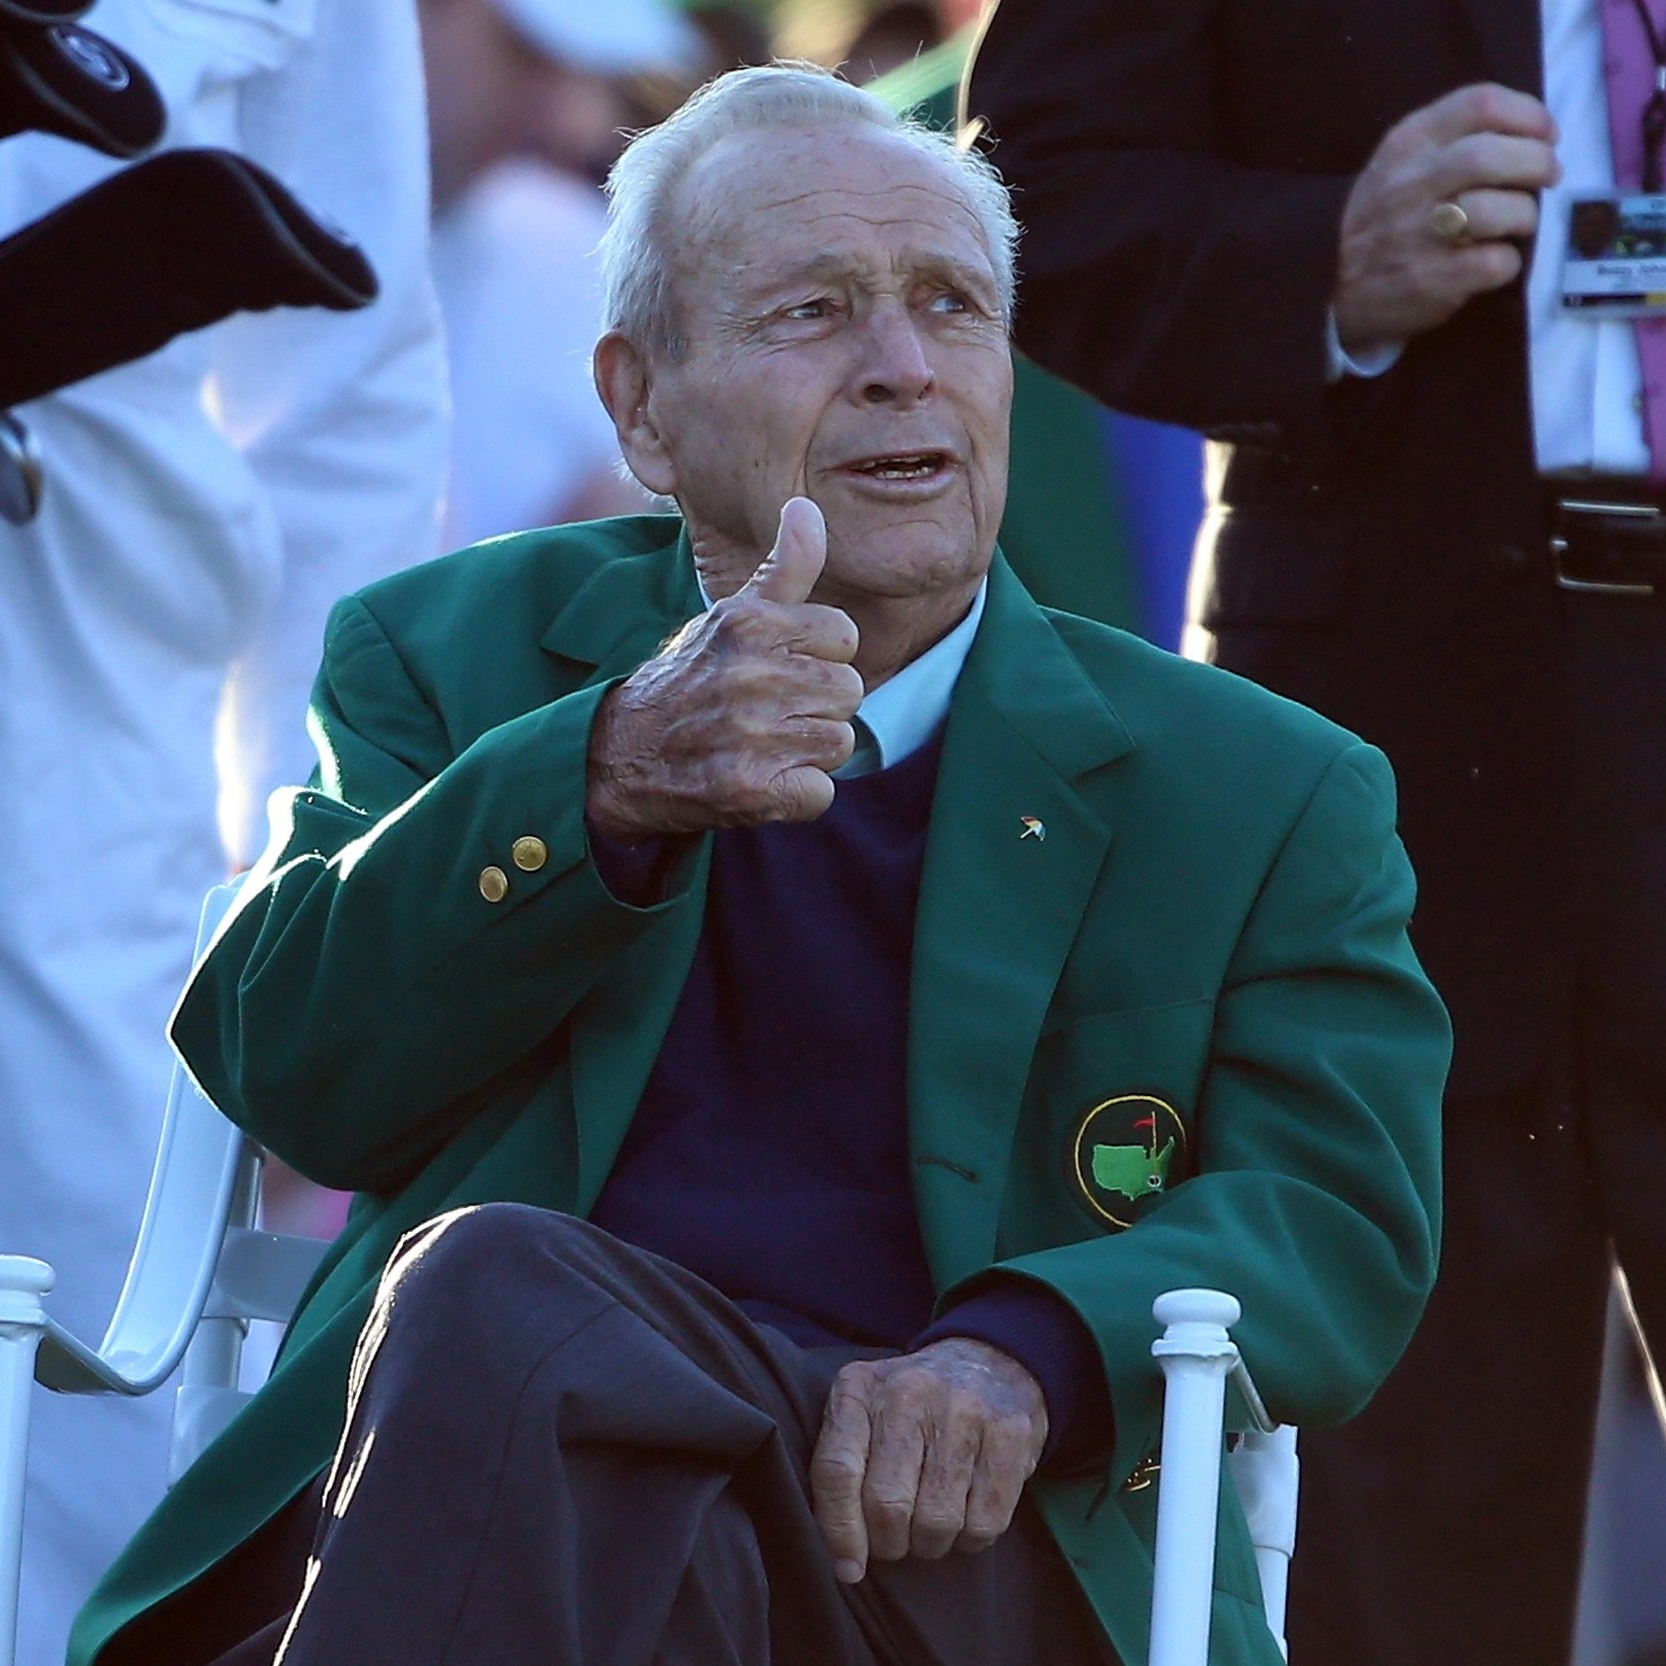 Arnold Palmer   The late Arnold Palmer, The King, was a special guest feature on a golf special that we produced.